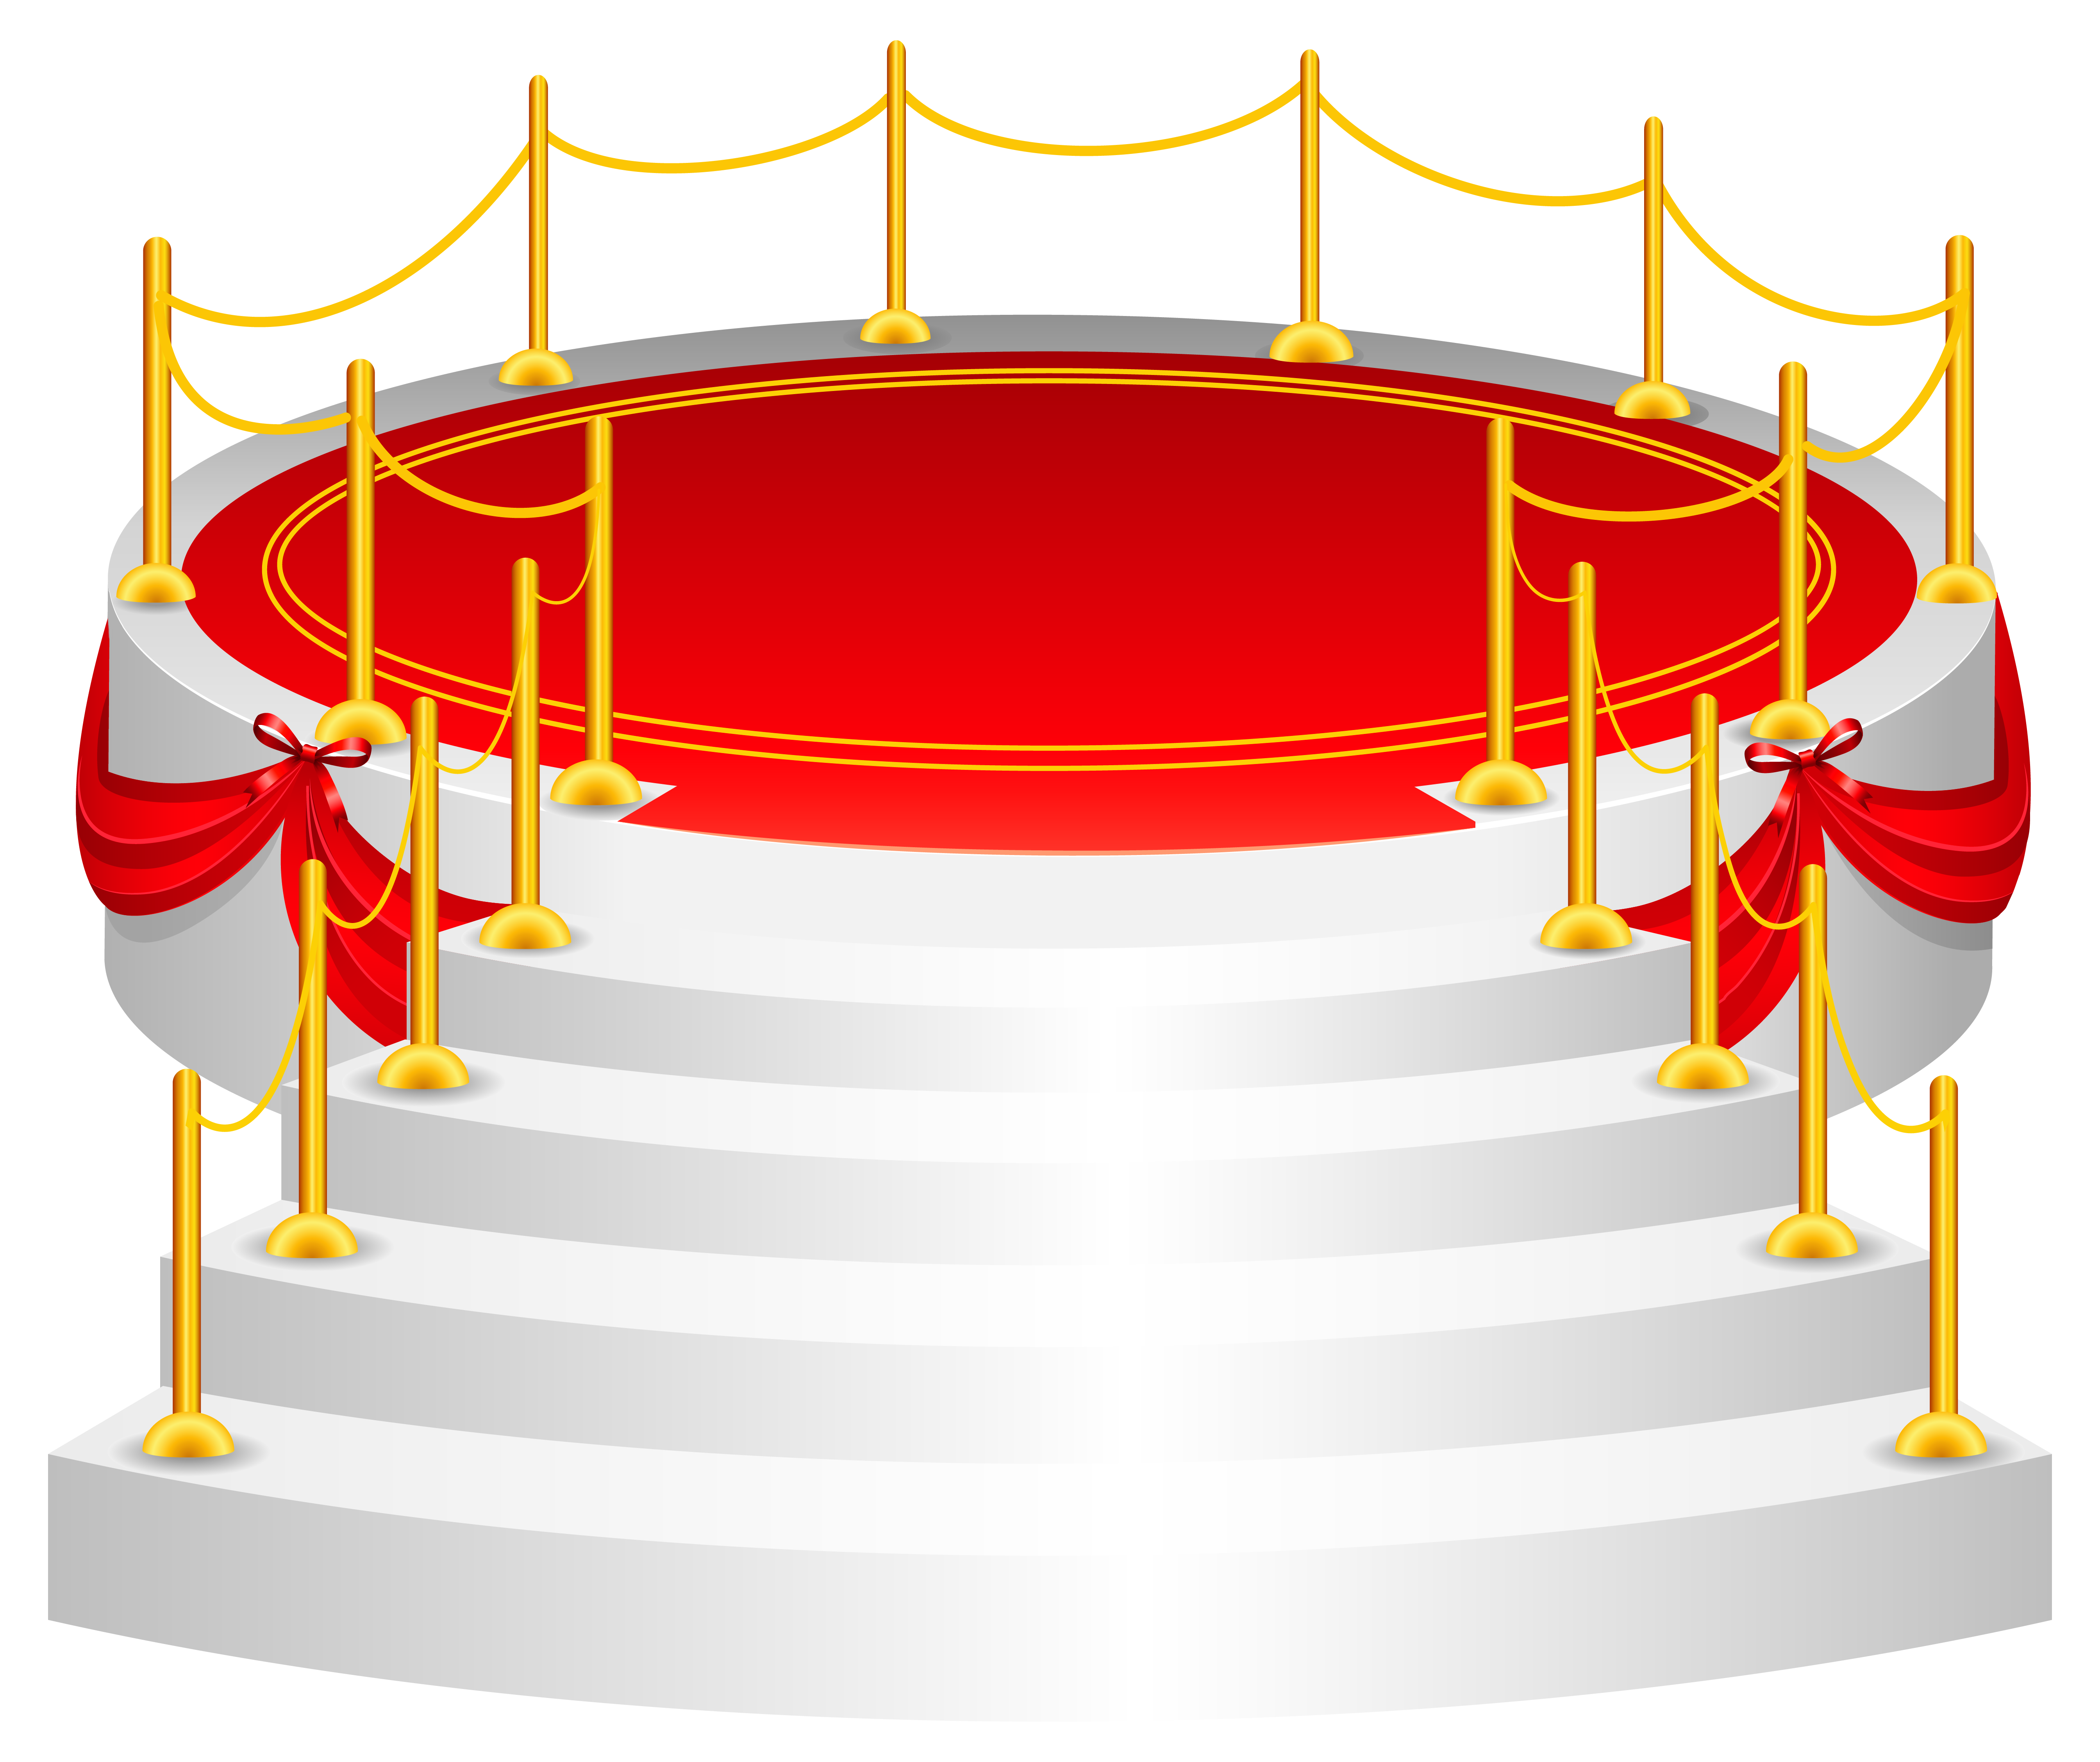 Stage star clipart clip art royalty free library Stage PNG Clip Art Image | Gallery Yopriceville - High-Quality ... clip art royalty free library